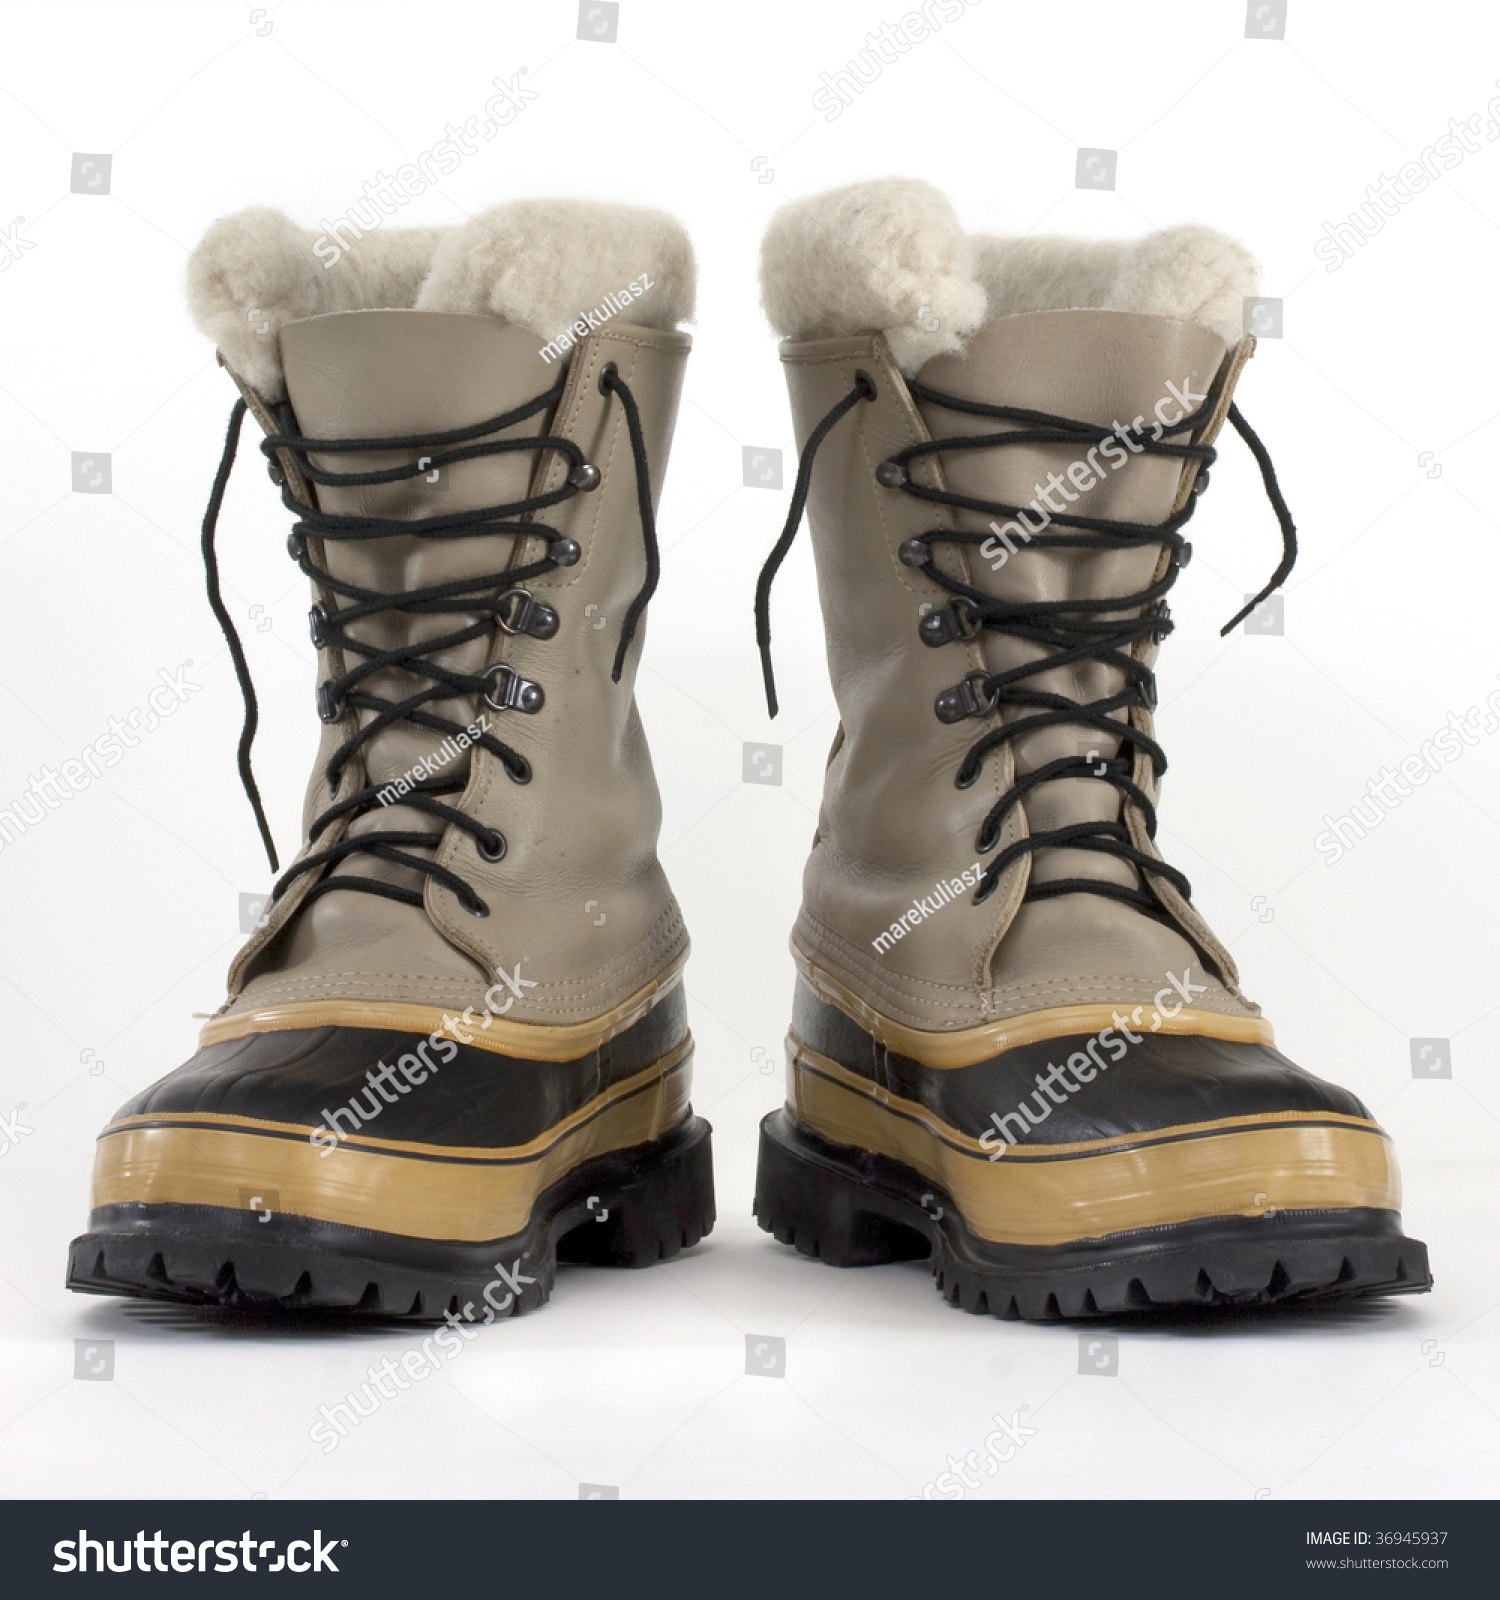 Pair Heavy Snow Boots On White Stock Photo 36945937 - Shutterstock